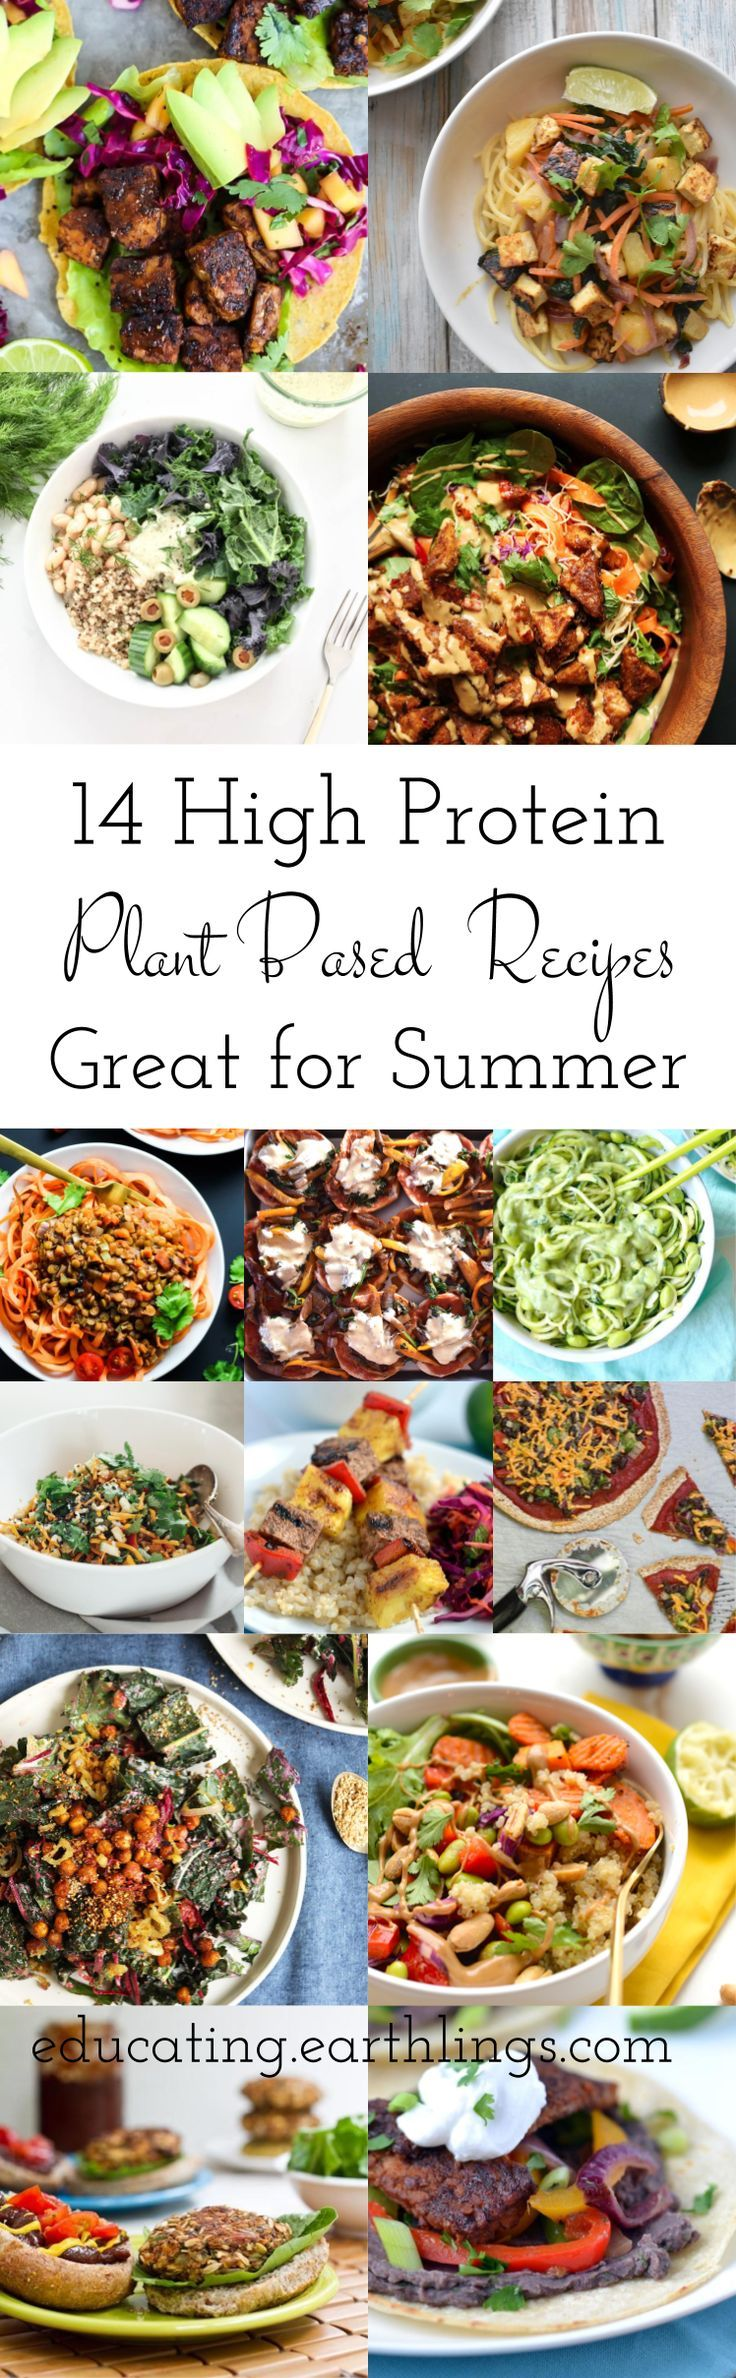 Protein-rich recipe for the summer